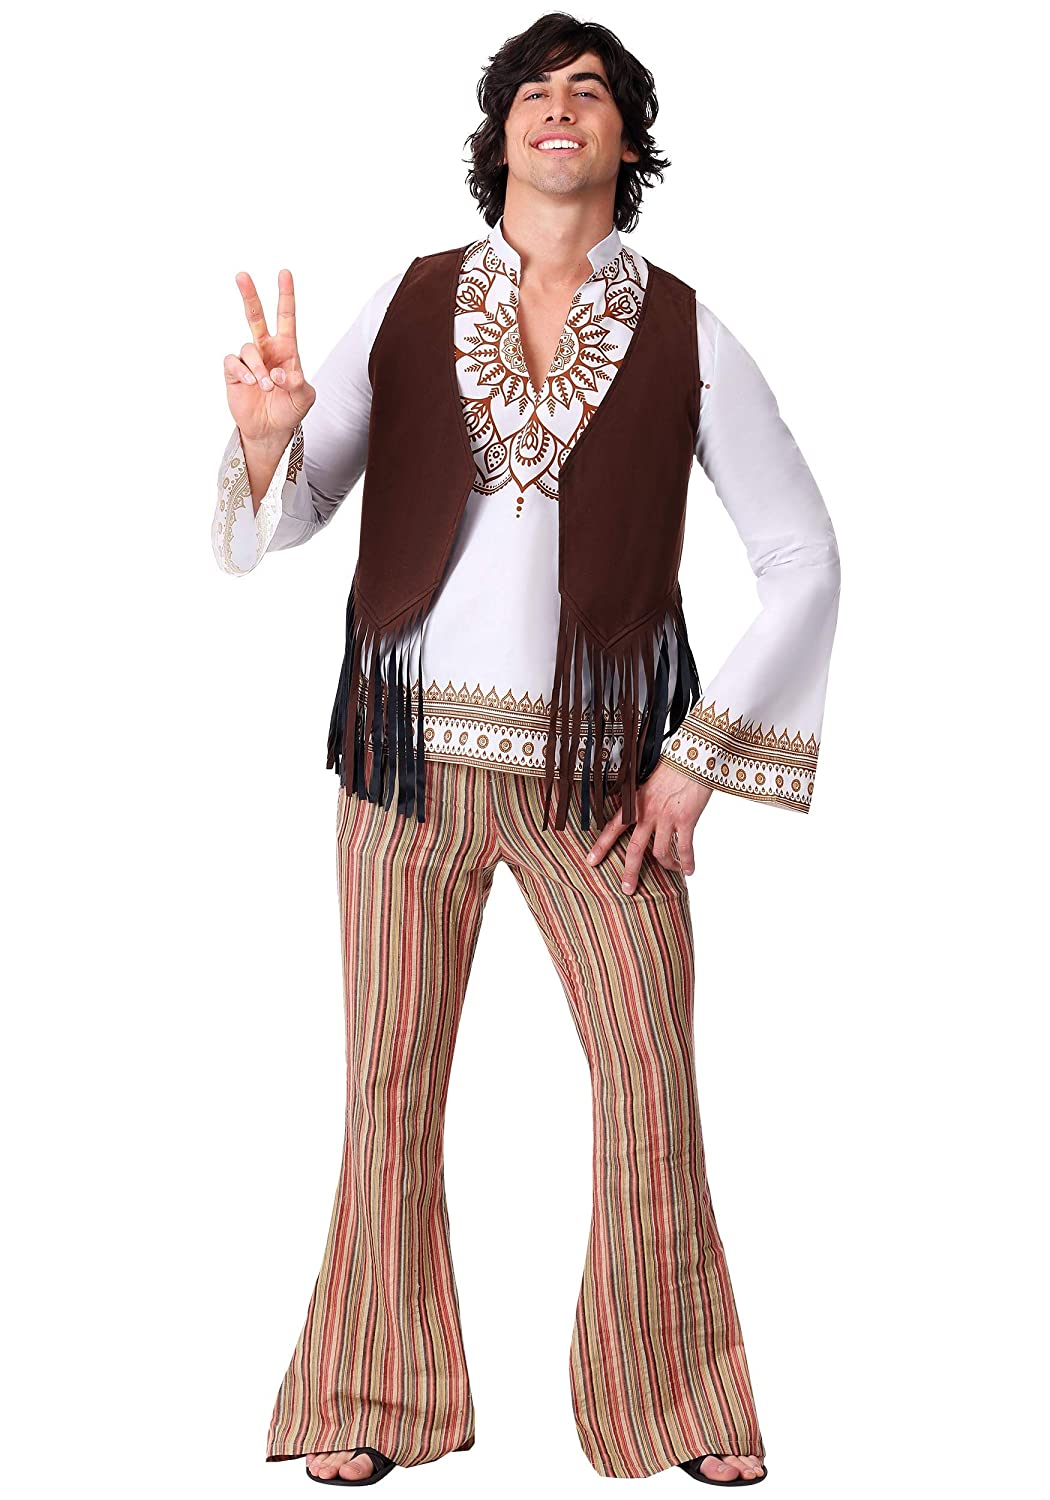 60s , 70s Hippie Clothes for Men Mens Woodstock Hippie Costume $44.99 AT vintagedancer.com